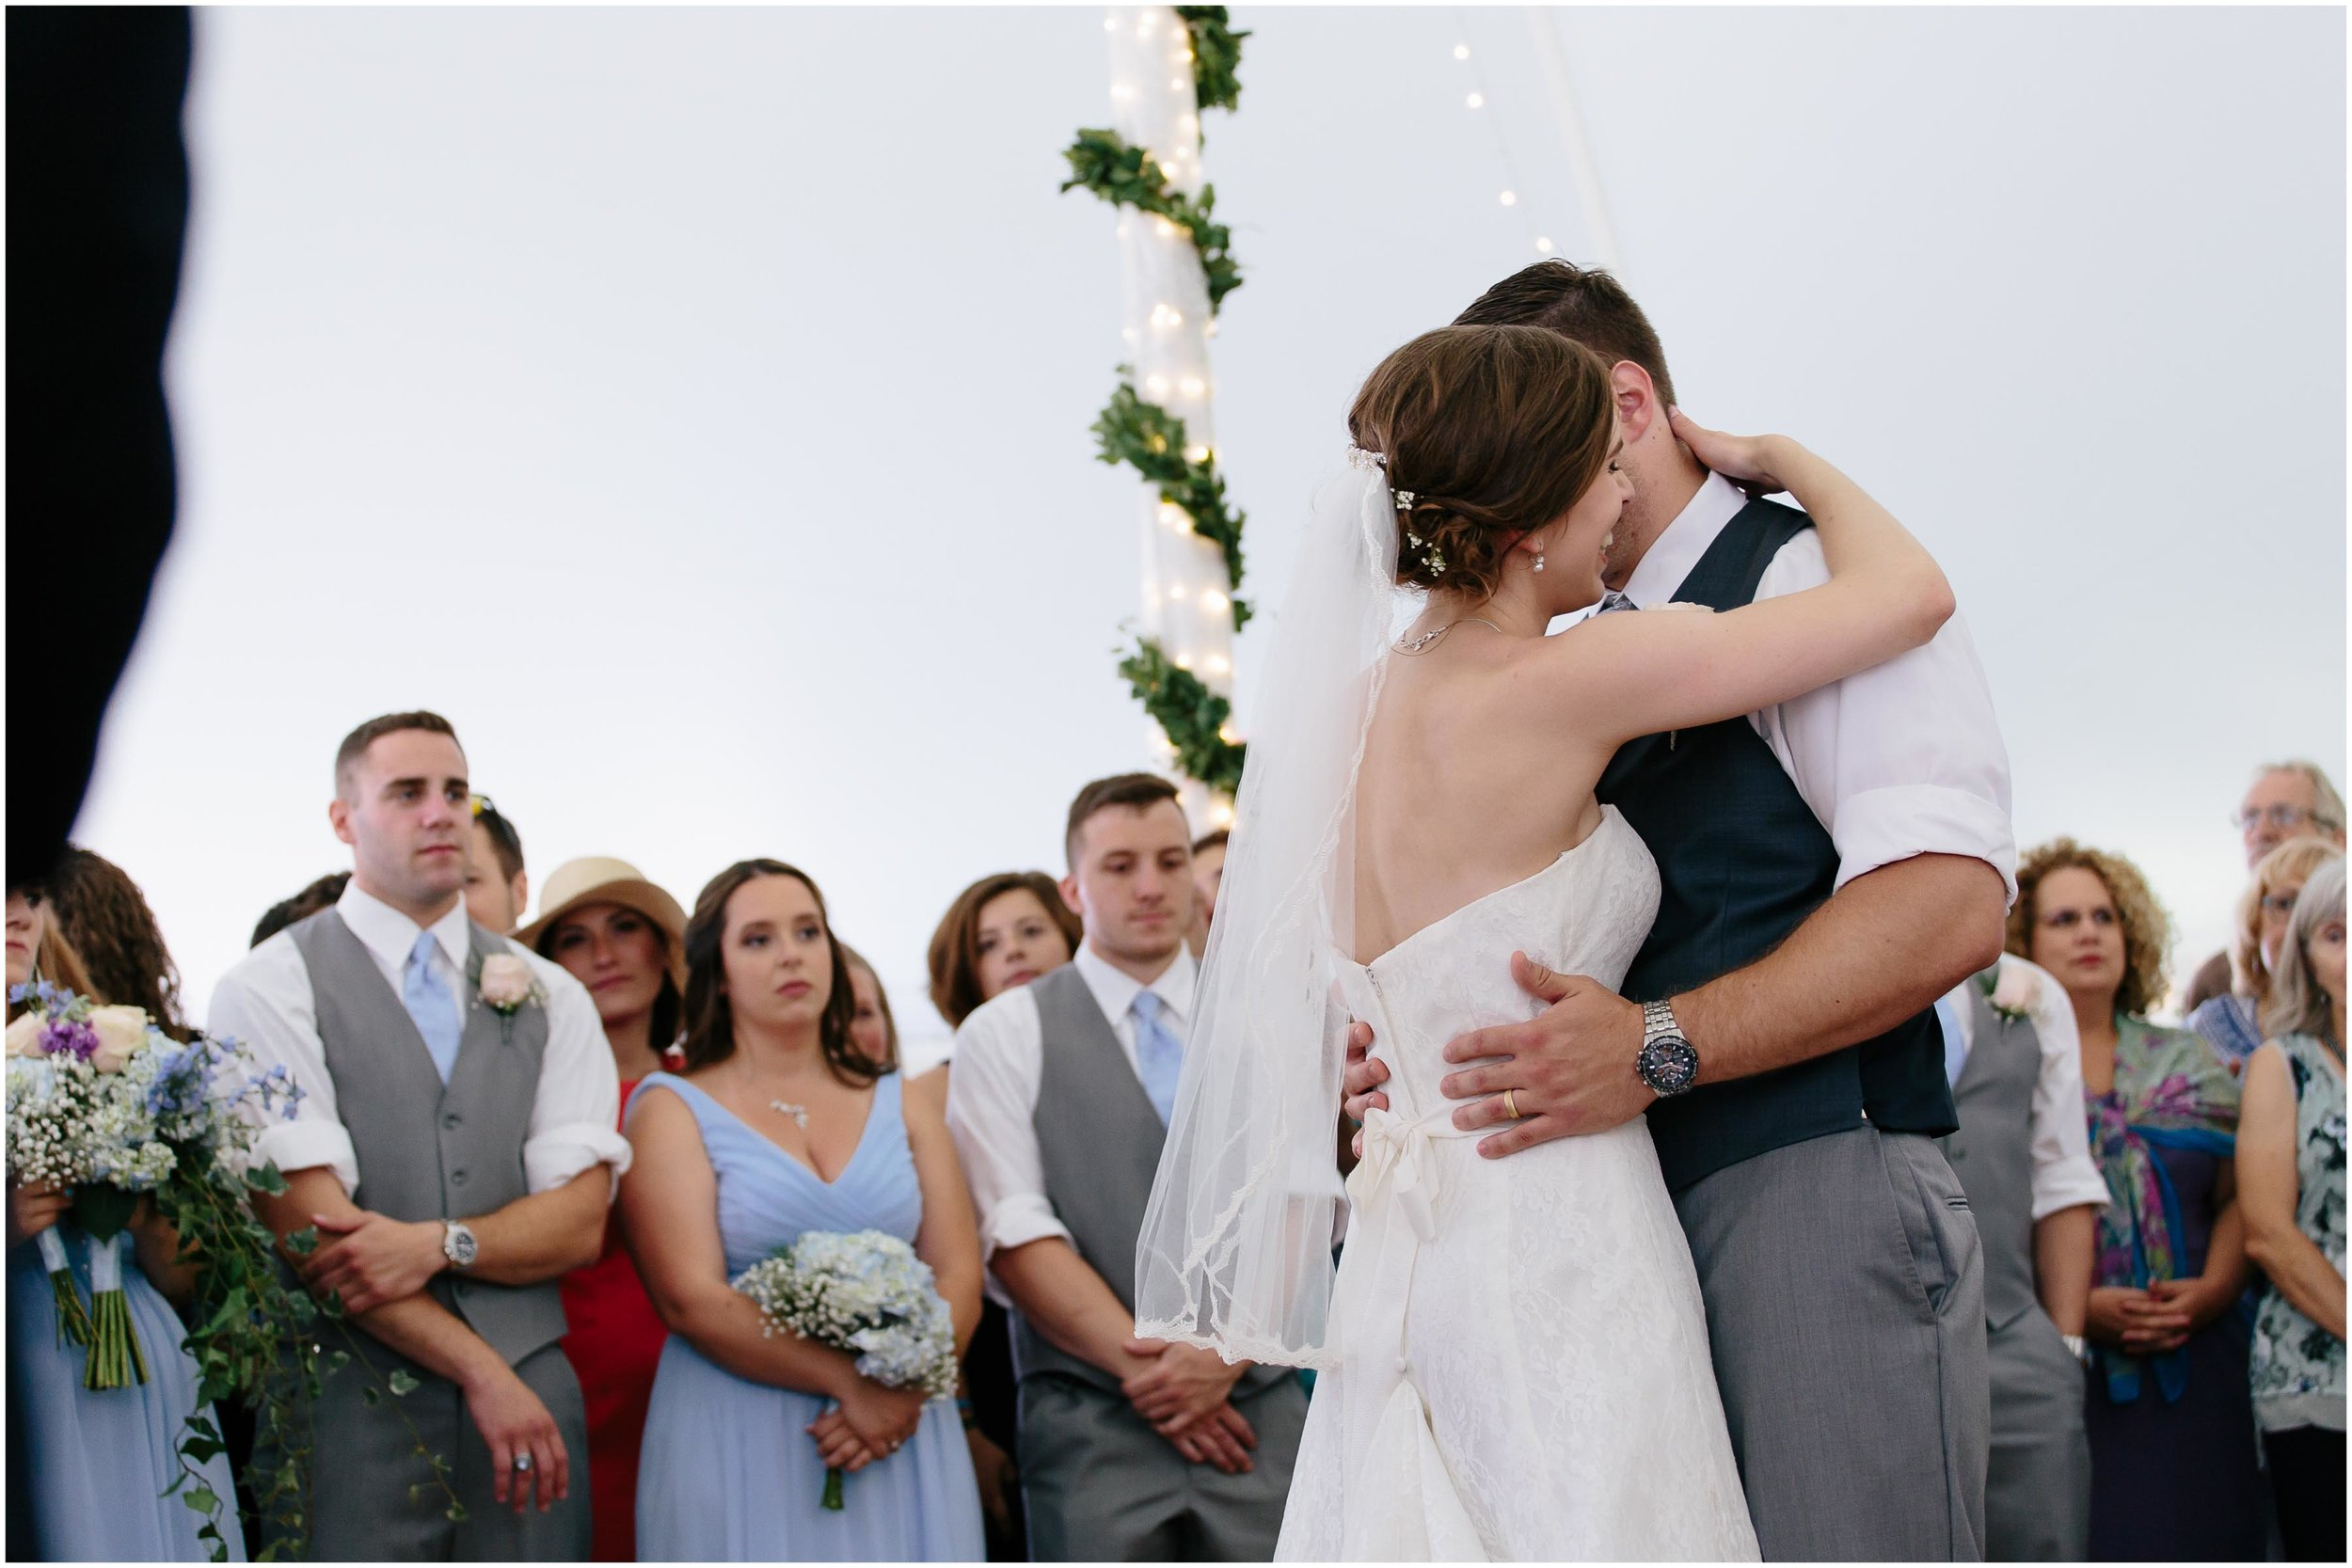 Sunny New Hampshire Summer Wedding at Mile Away Restaurant Milford - first dance